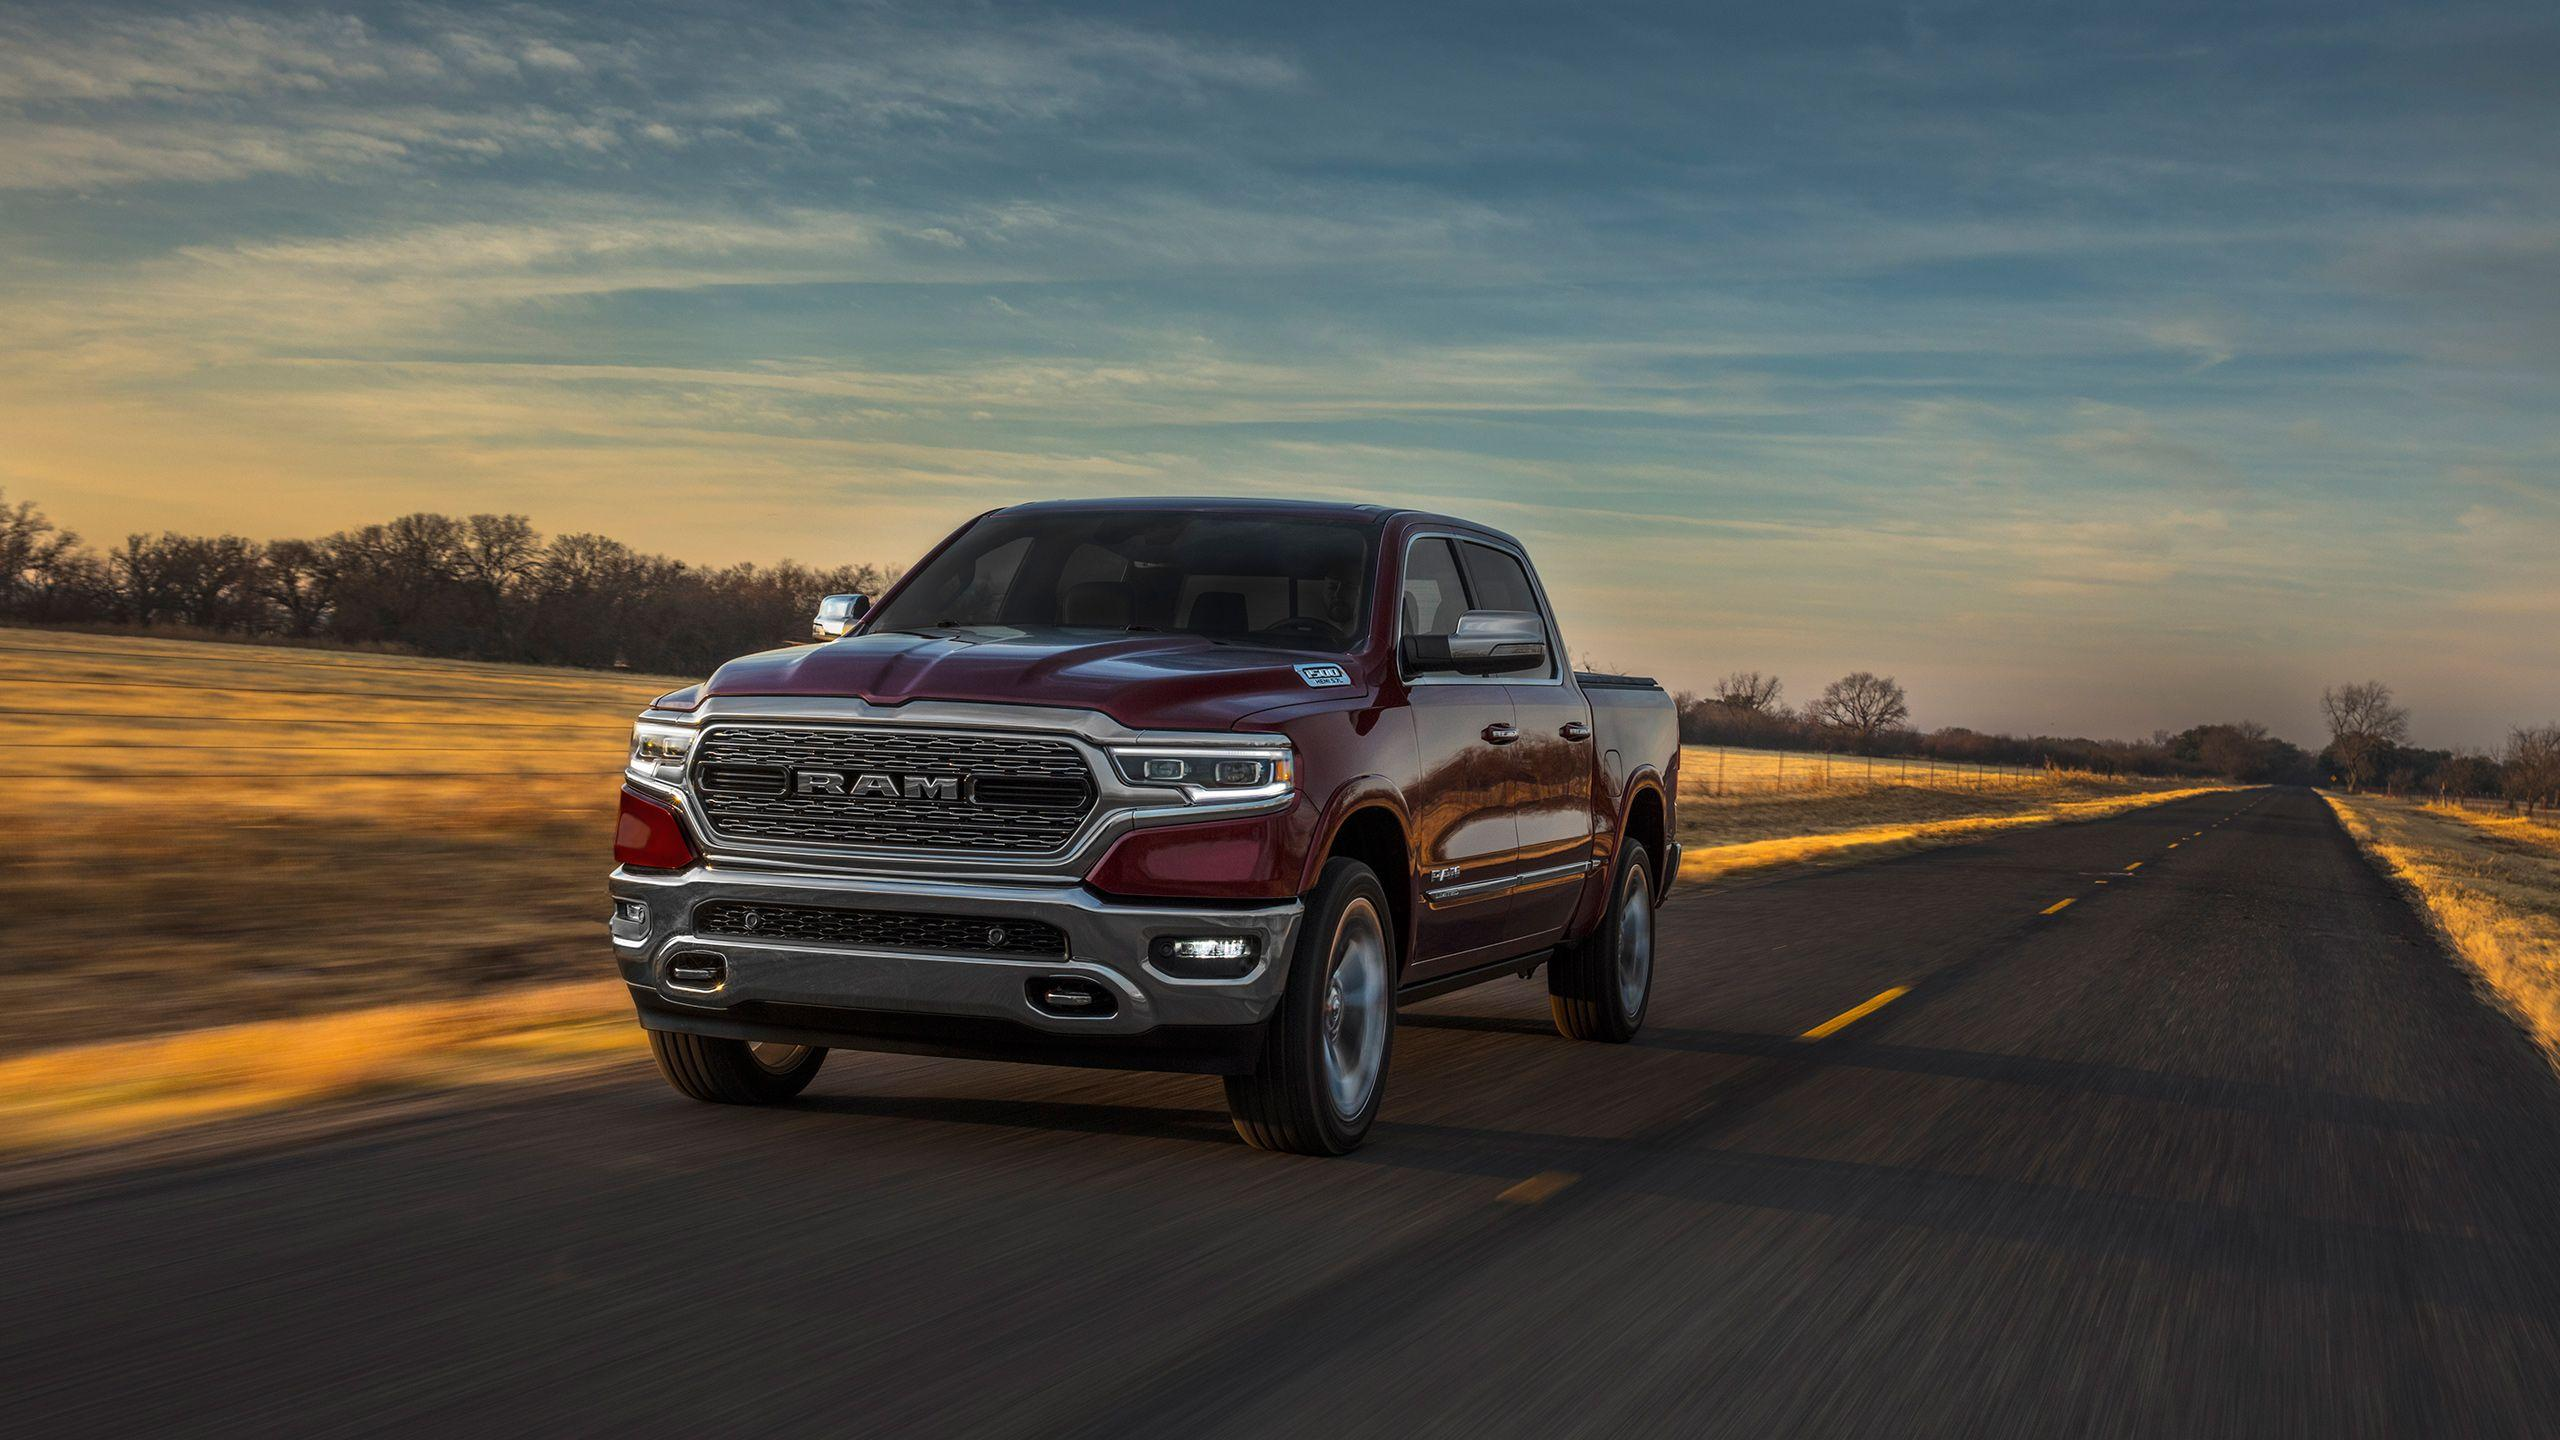 2019 Ram 1500 Limited Crew Cab Wallpaper | HD Car Wallpapers | ID #9408